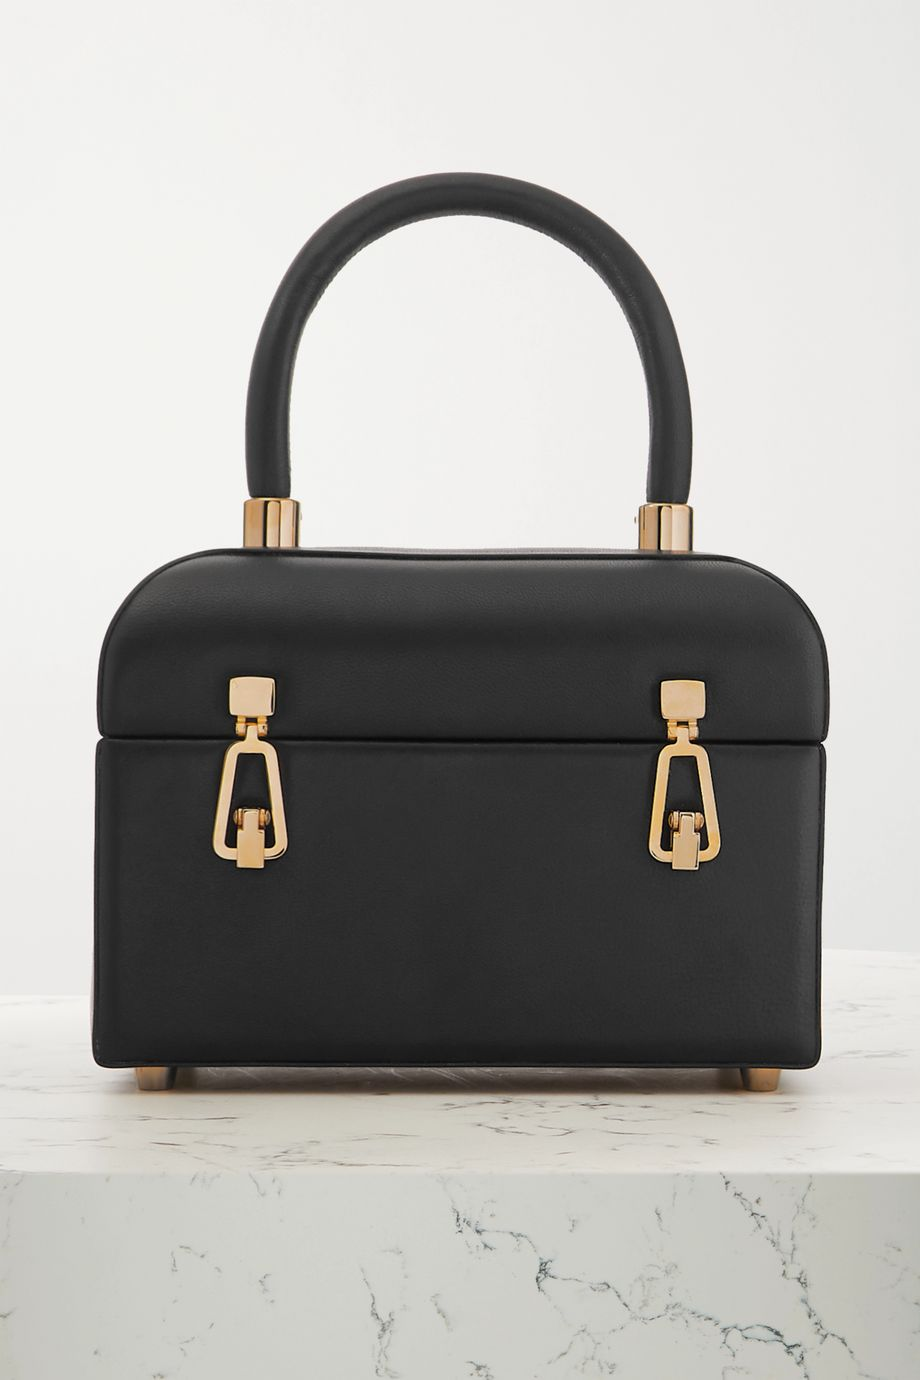 Gabriela Hearst Patsy leather tote